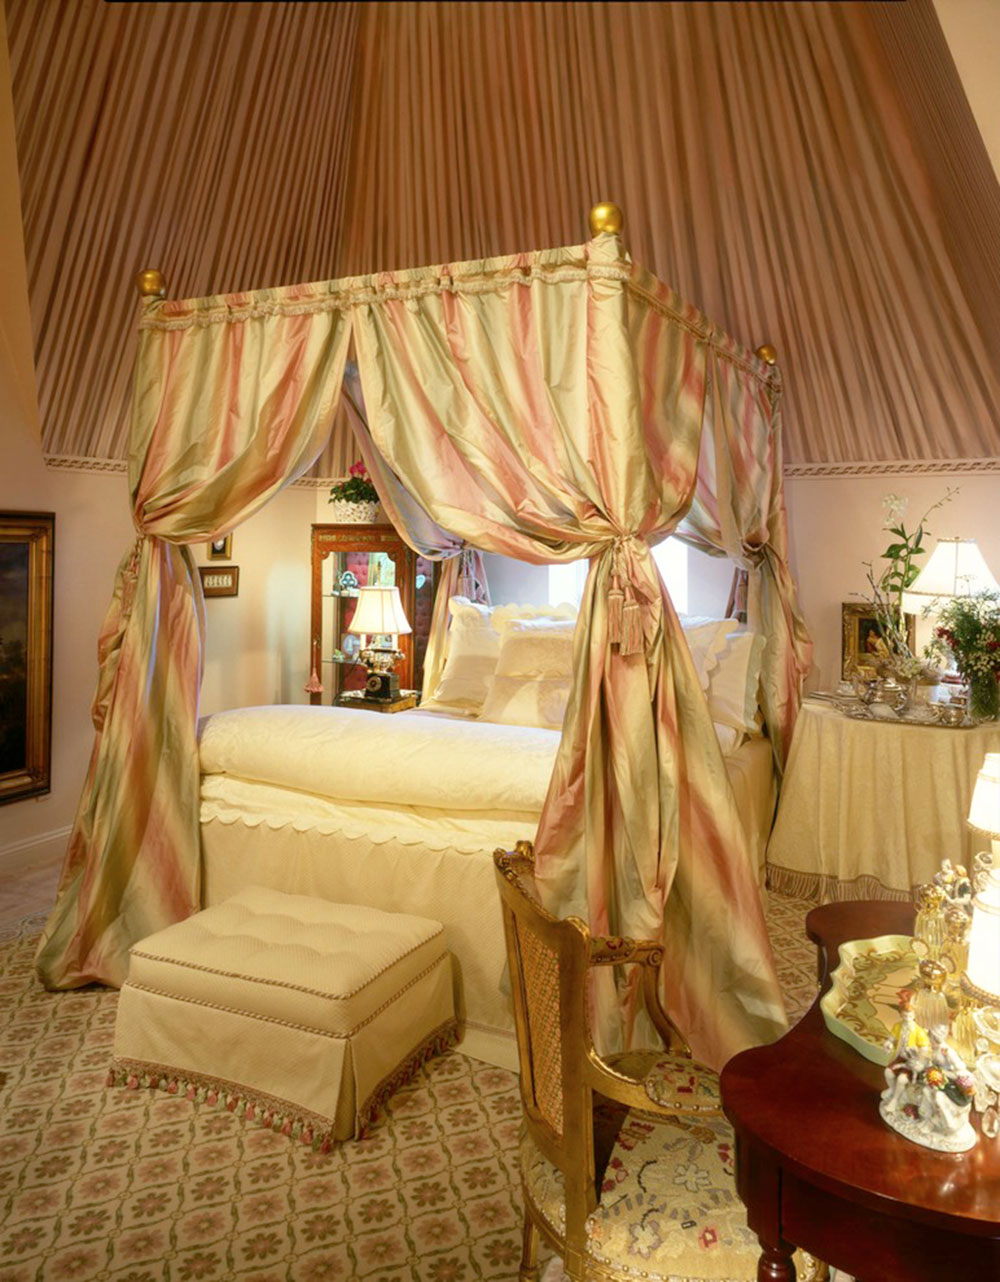 Canopy-Bed-Ideas-That-Delights-Your-Room1 Canopy Bed Ideas & Canopy Bed Ideas That Delight Your Room